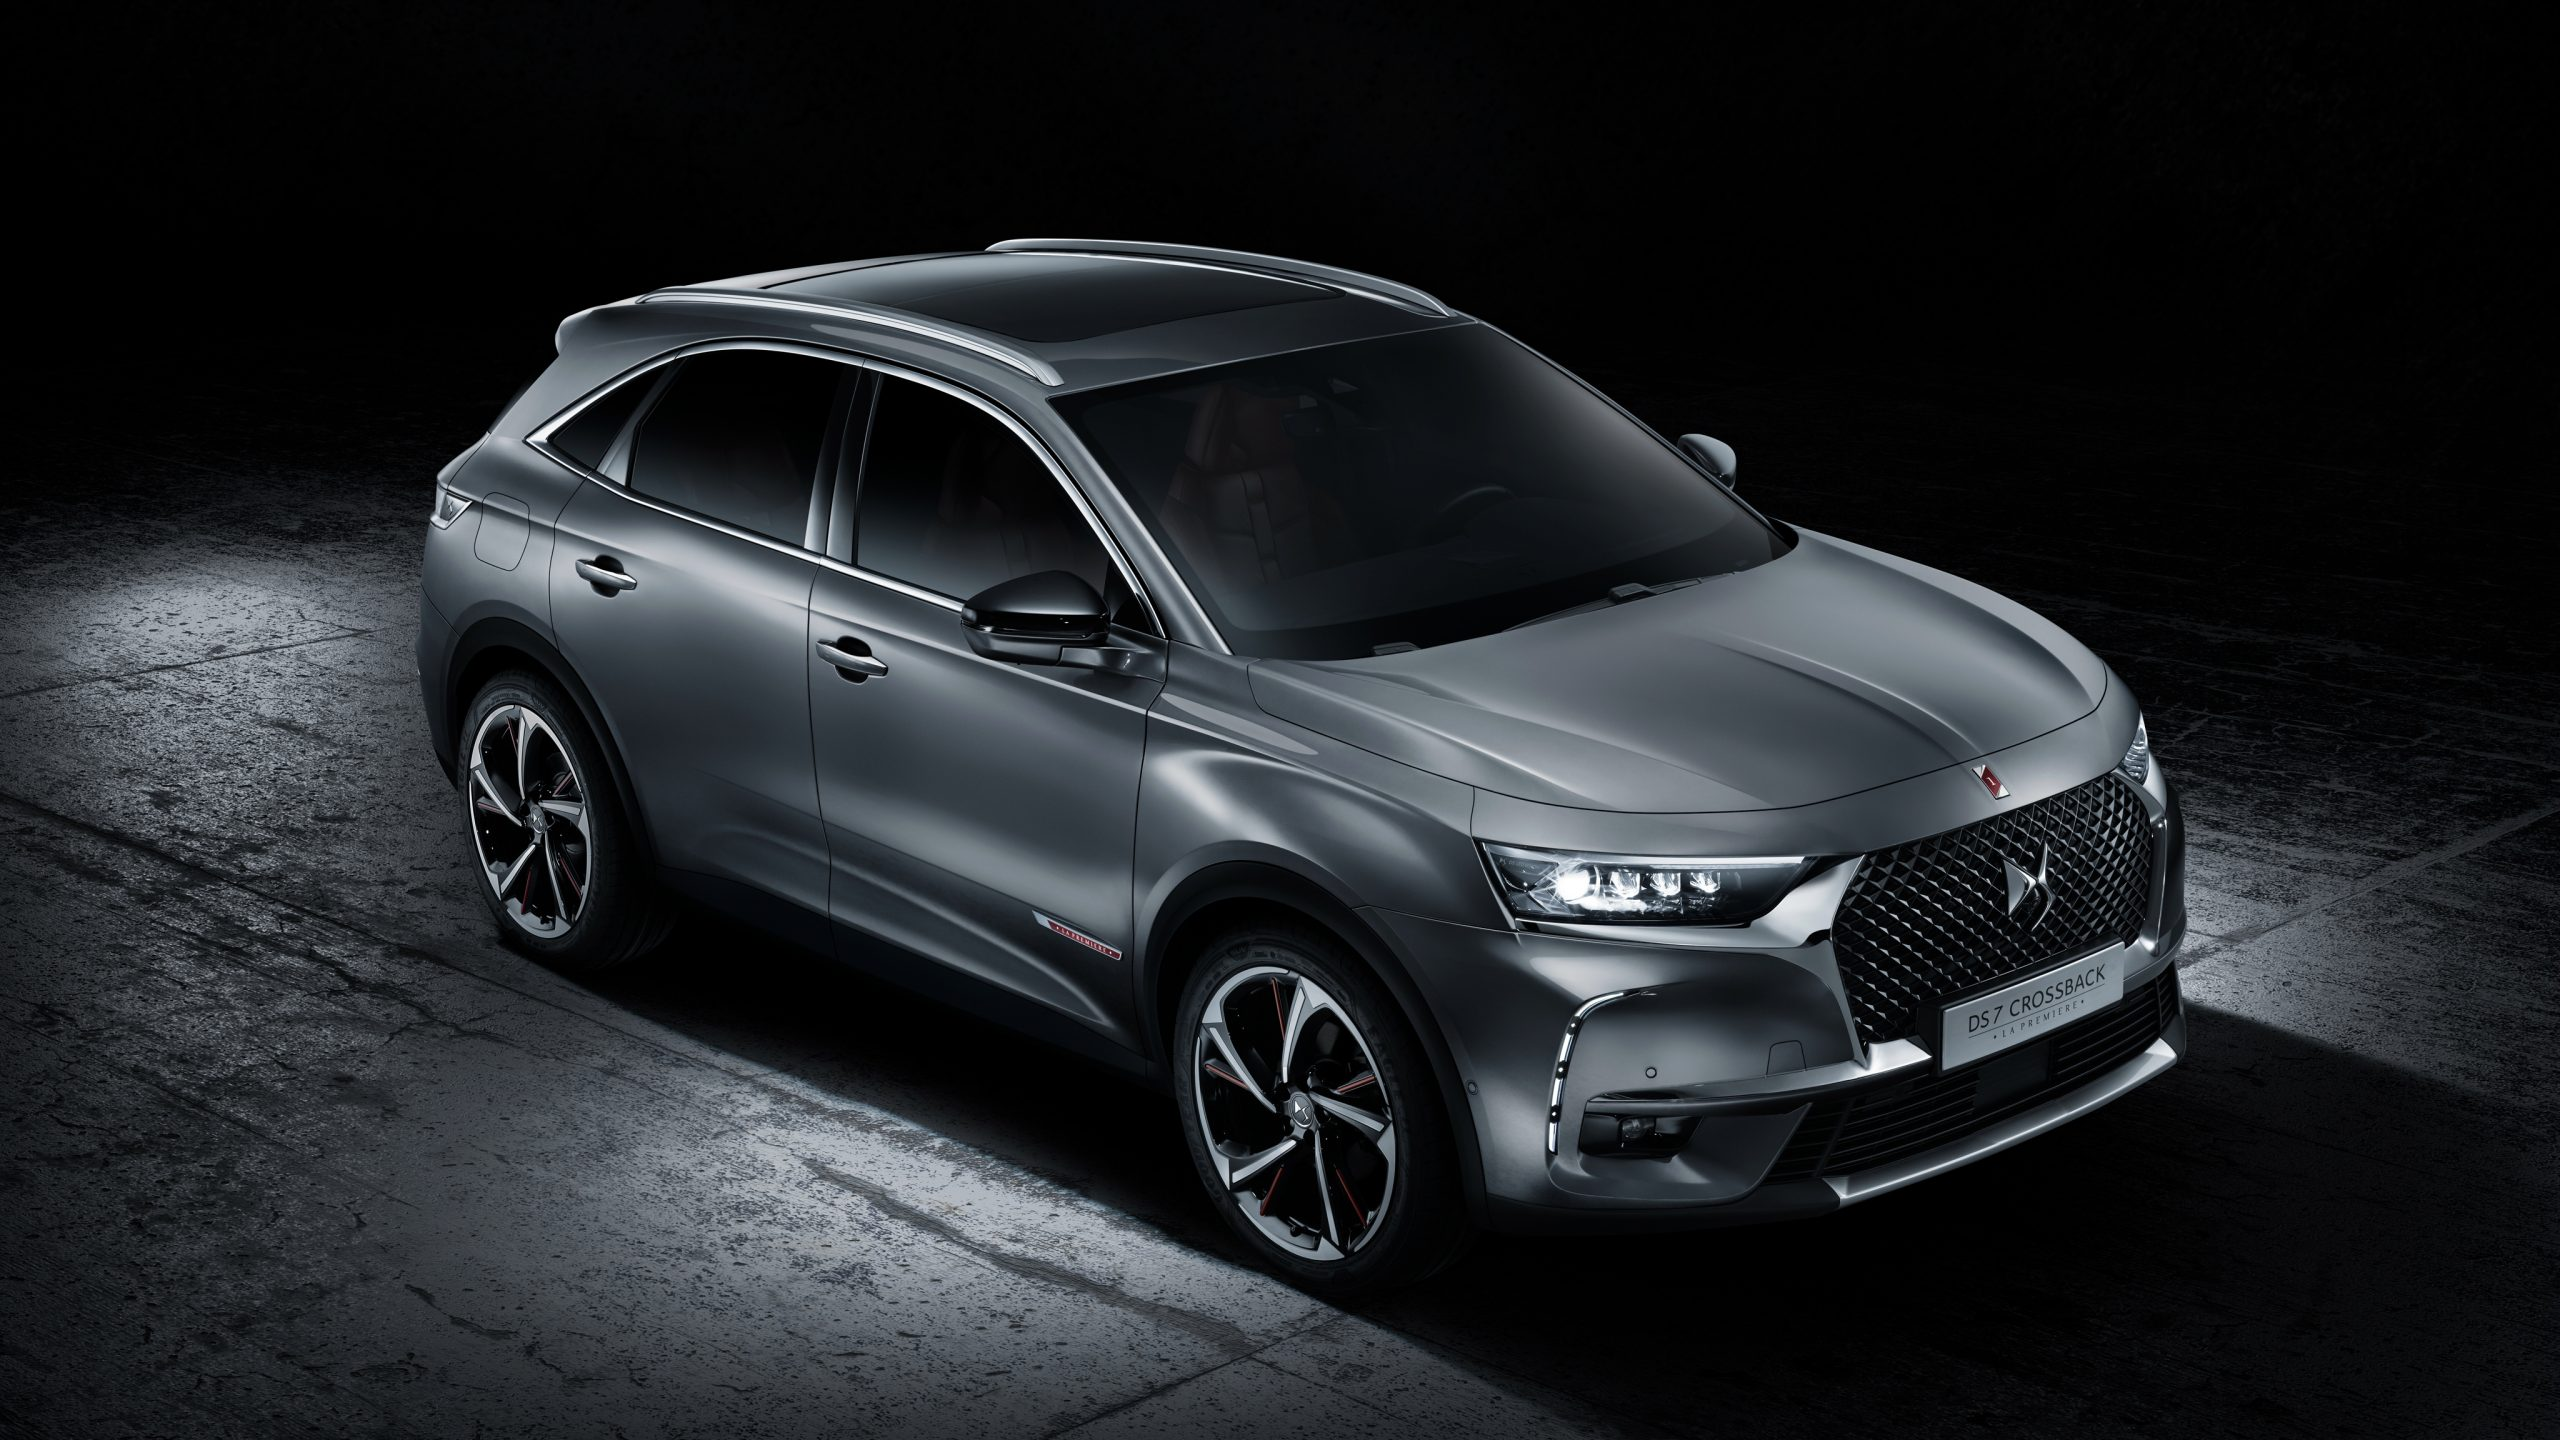 DS Car Sales Europe